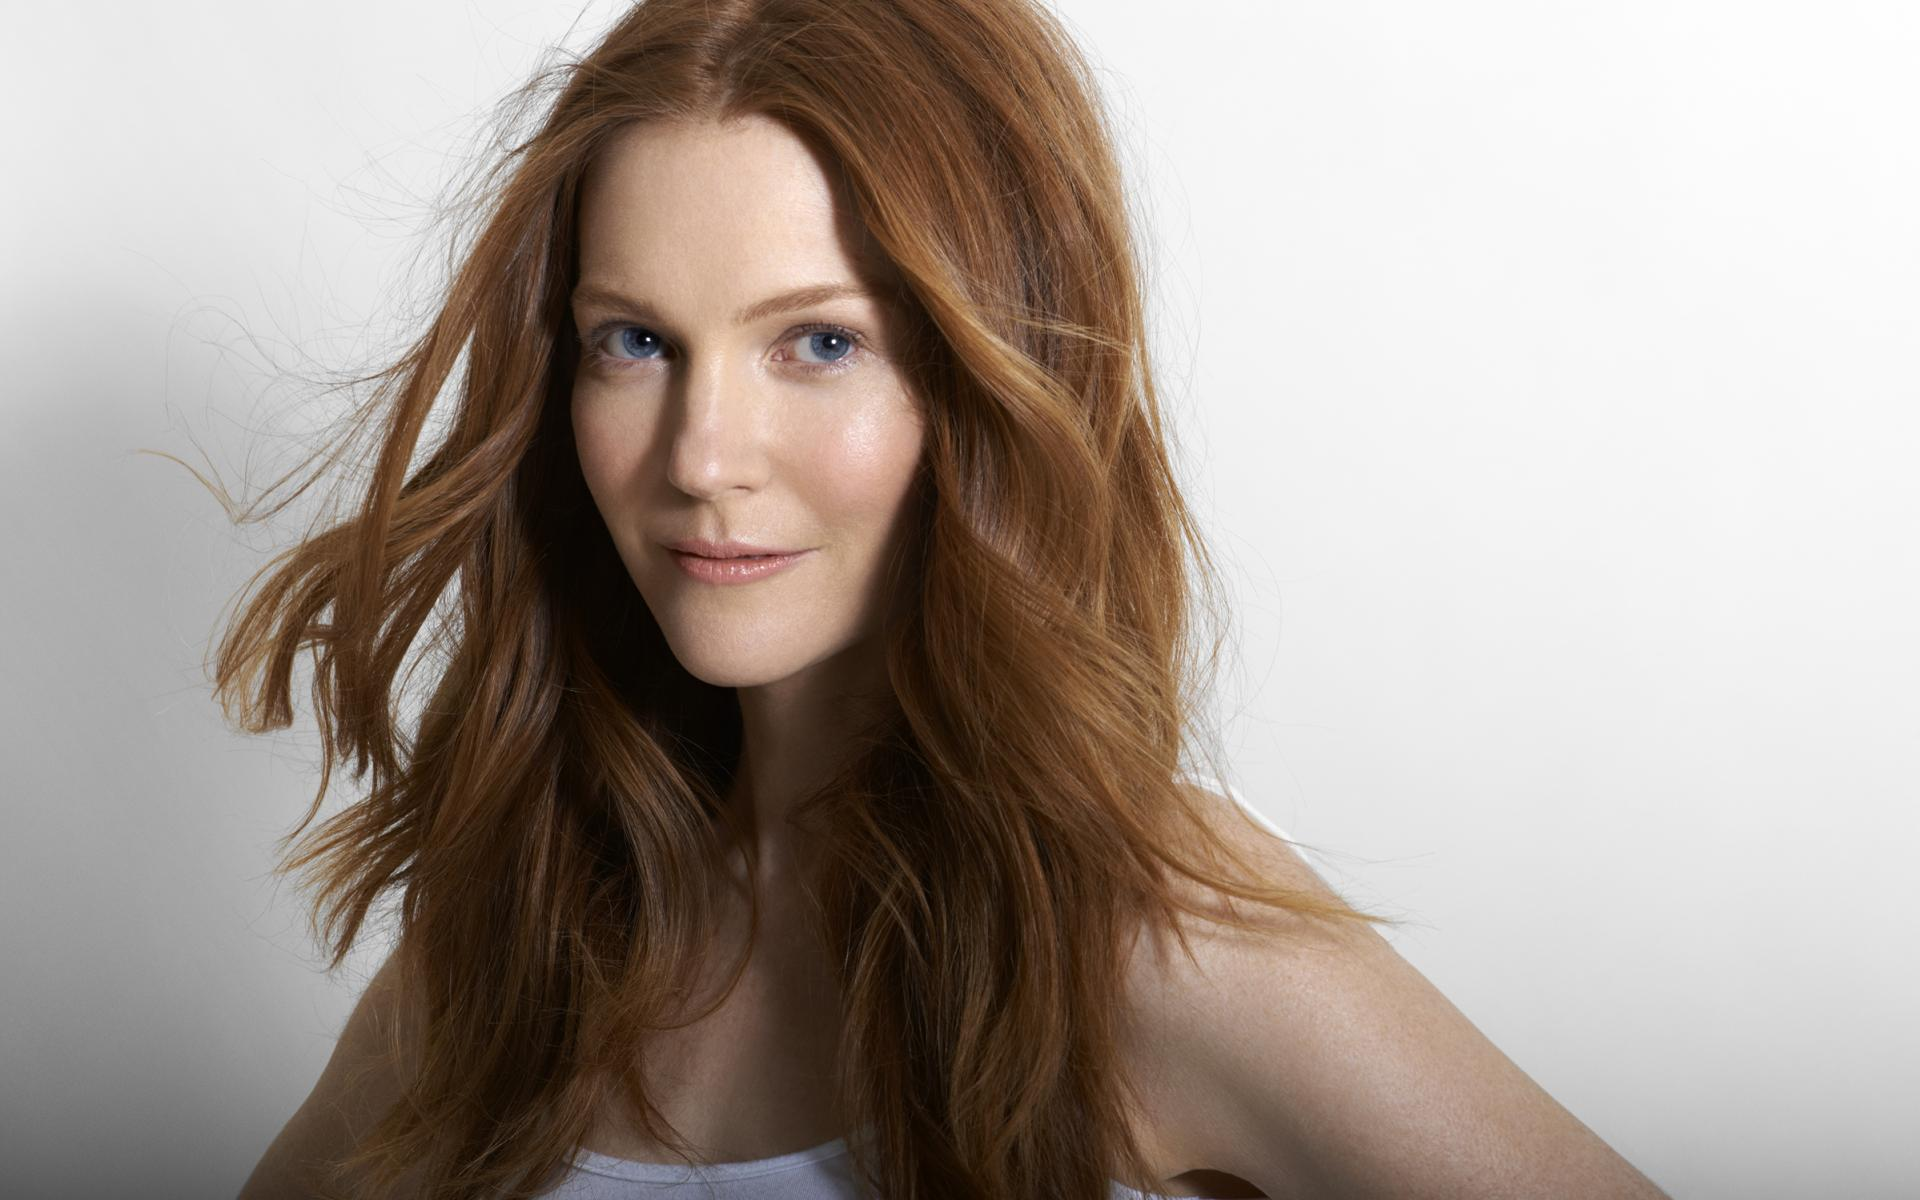 1920x1200 - Darby Stanchfield Wallpapers 12